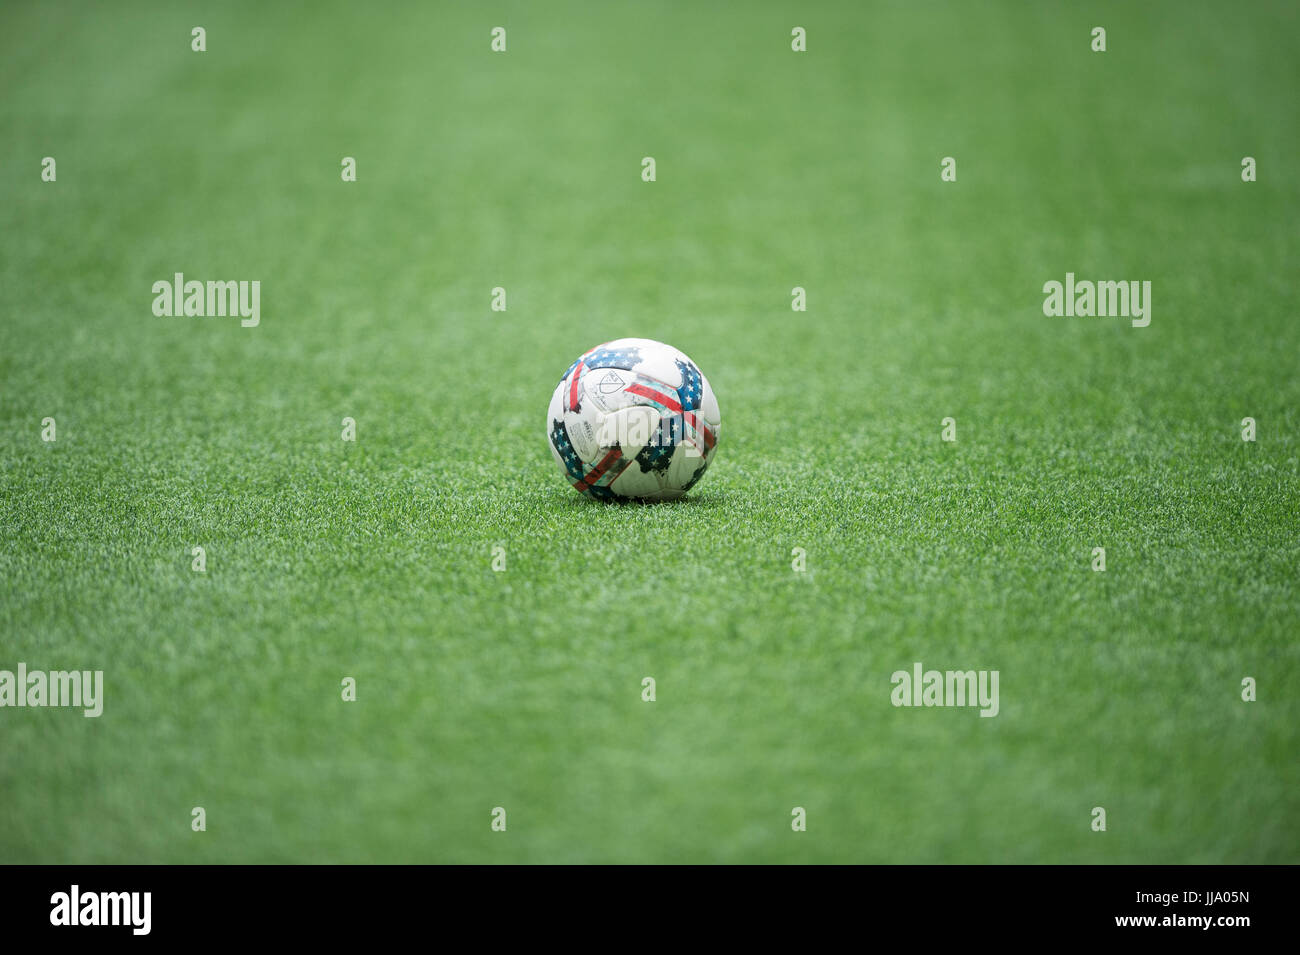 MLS soccer ball stationary on the pitch of artificial turf.. - Stock Image